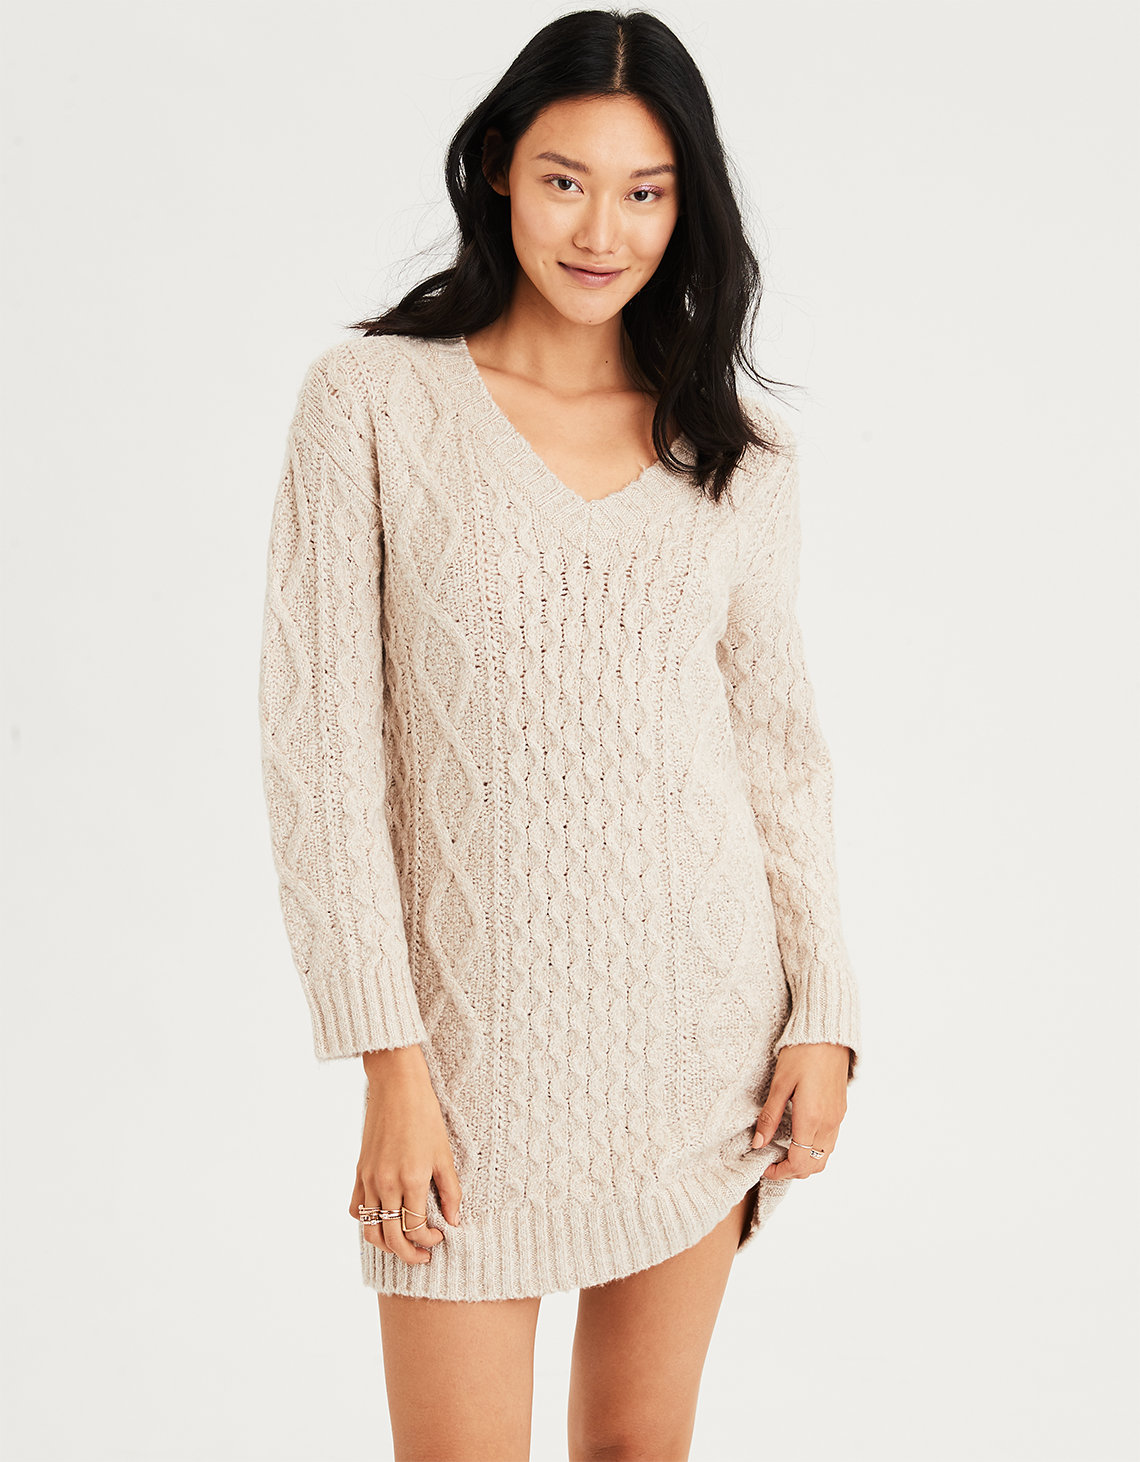 acf1b044f2ce AE V-Neck Cable Knit Sweater Dress